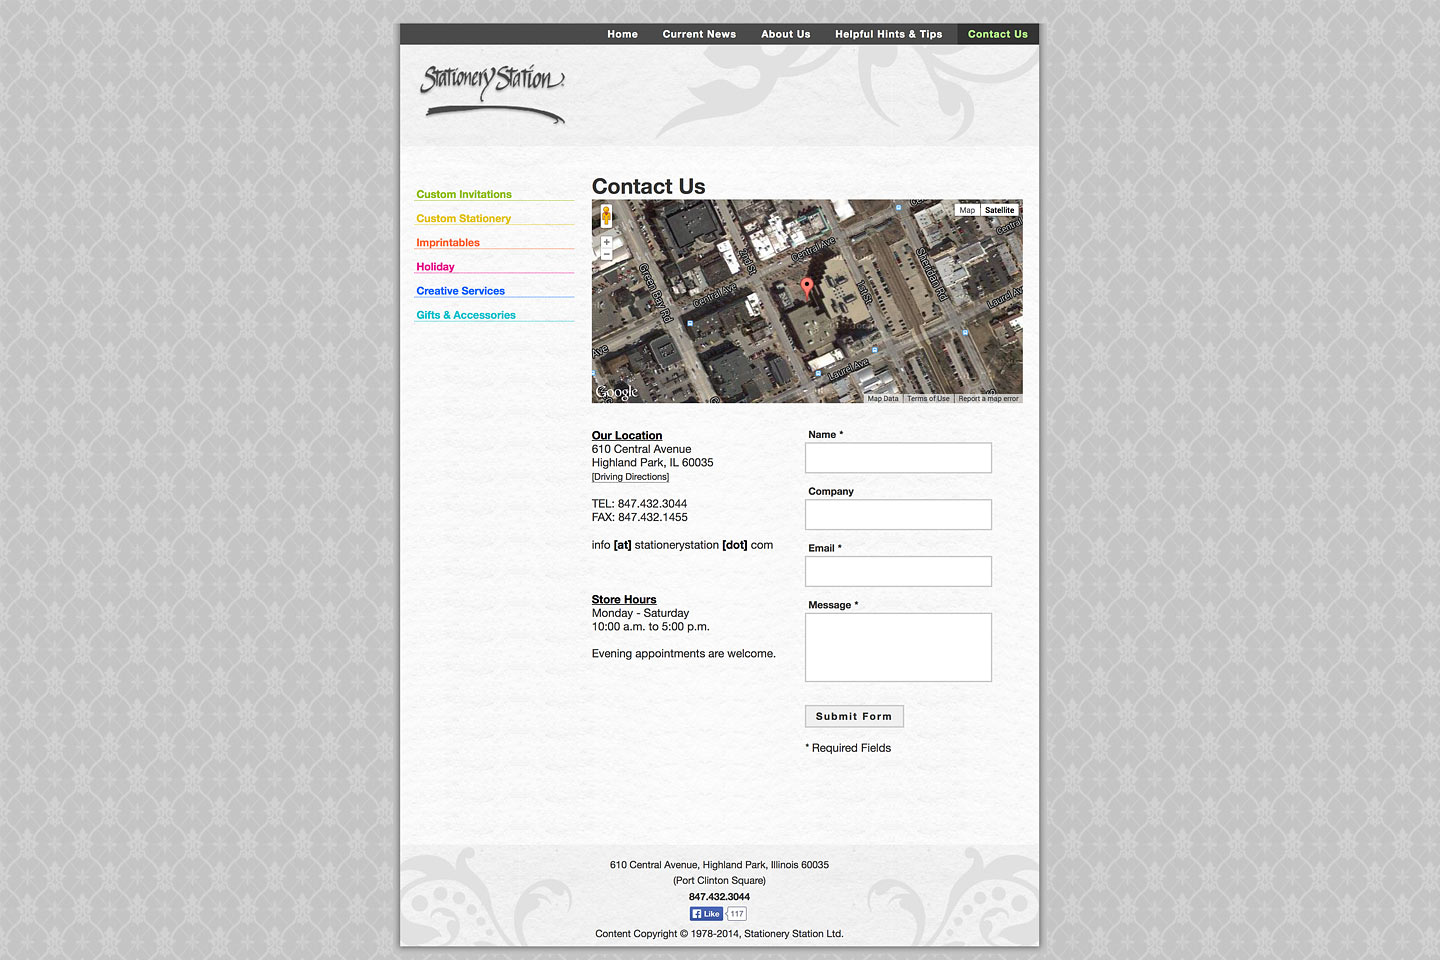 a screen capture of the stationery station contact us page, designed and developed by 4d, inc